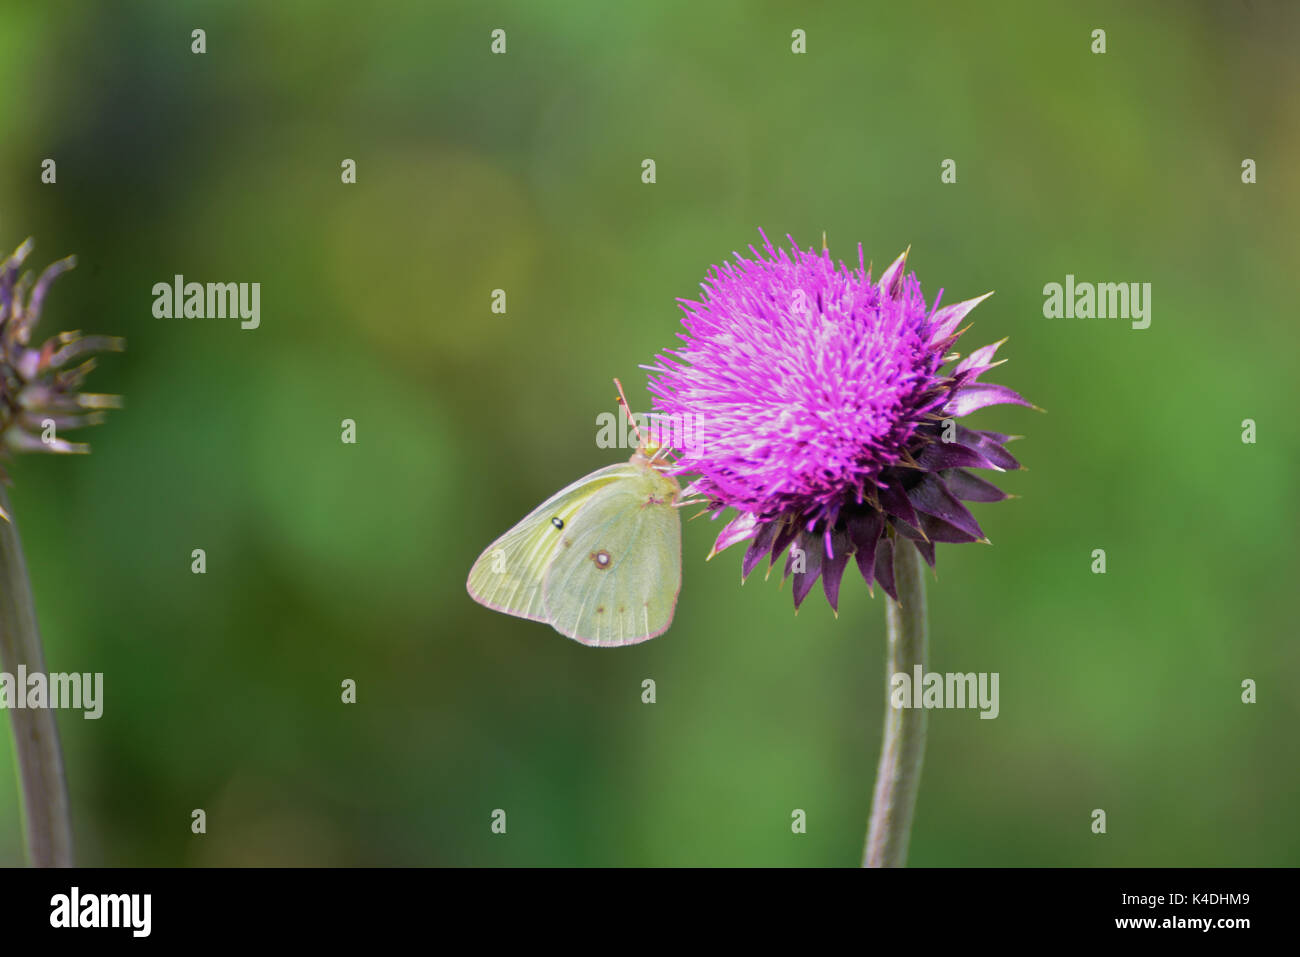 Clouded Sulphur Butterfly on Thistle - Stock Image